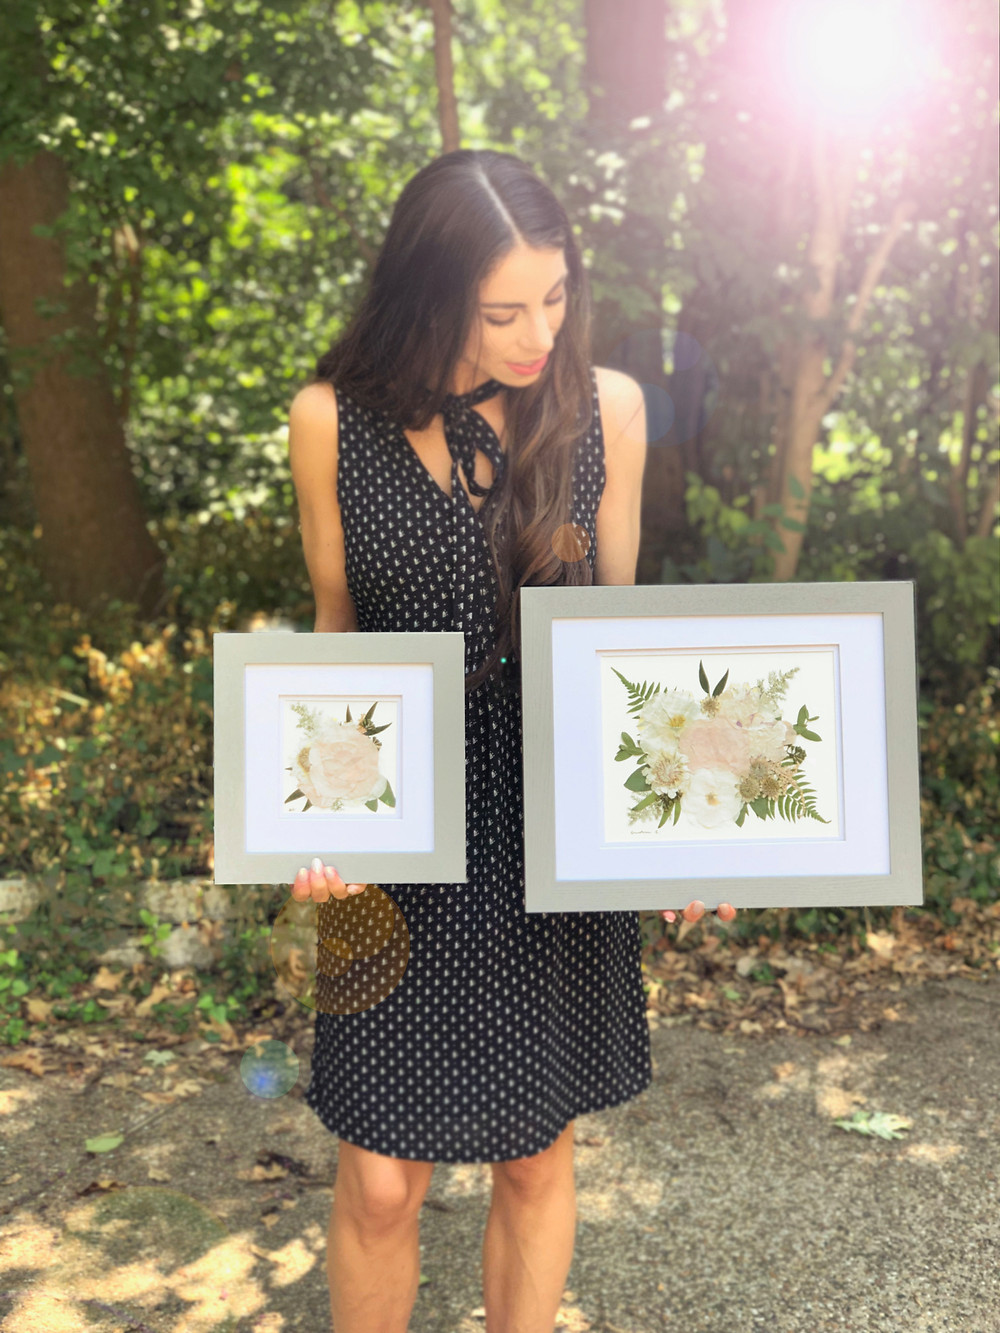 Founder and designer, Andrea Castaneda holding two framed bridal bouquet pieces.